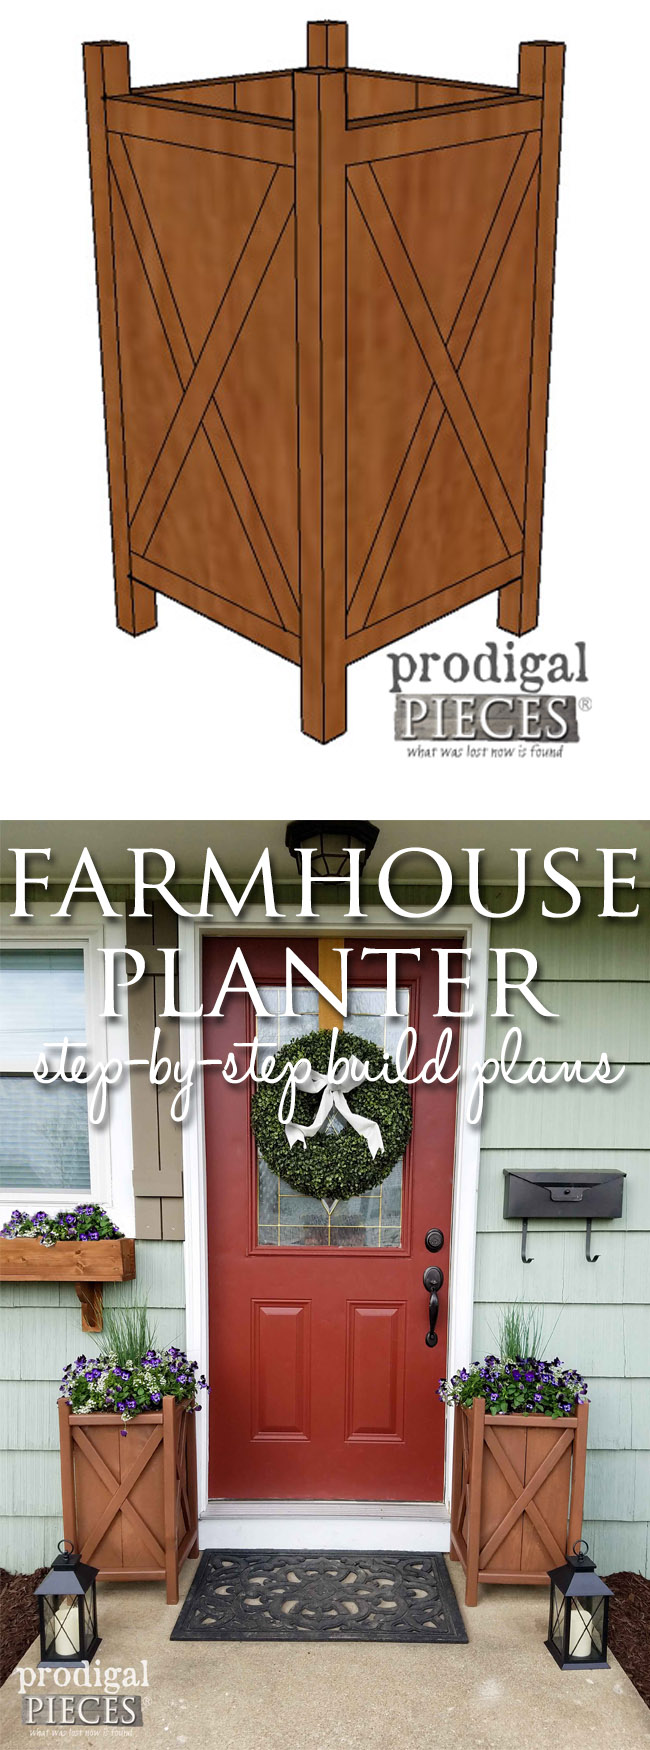 Create Curb Appeal with this easy-to-follow build plans for a farmhouse planter. Video included! Head to Prodigal Pieces | prodigalpieces.com